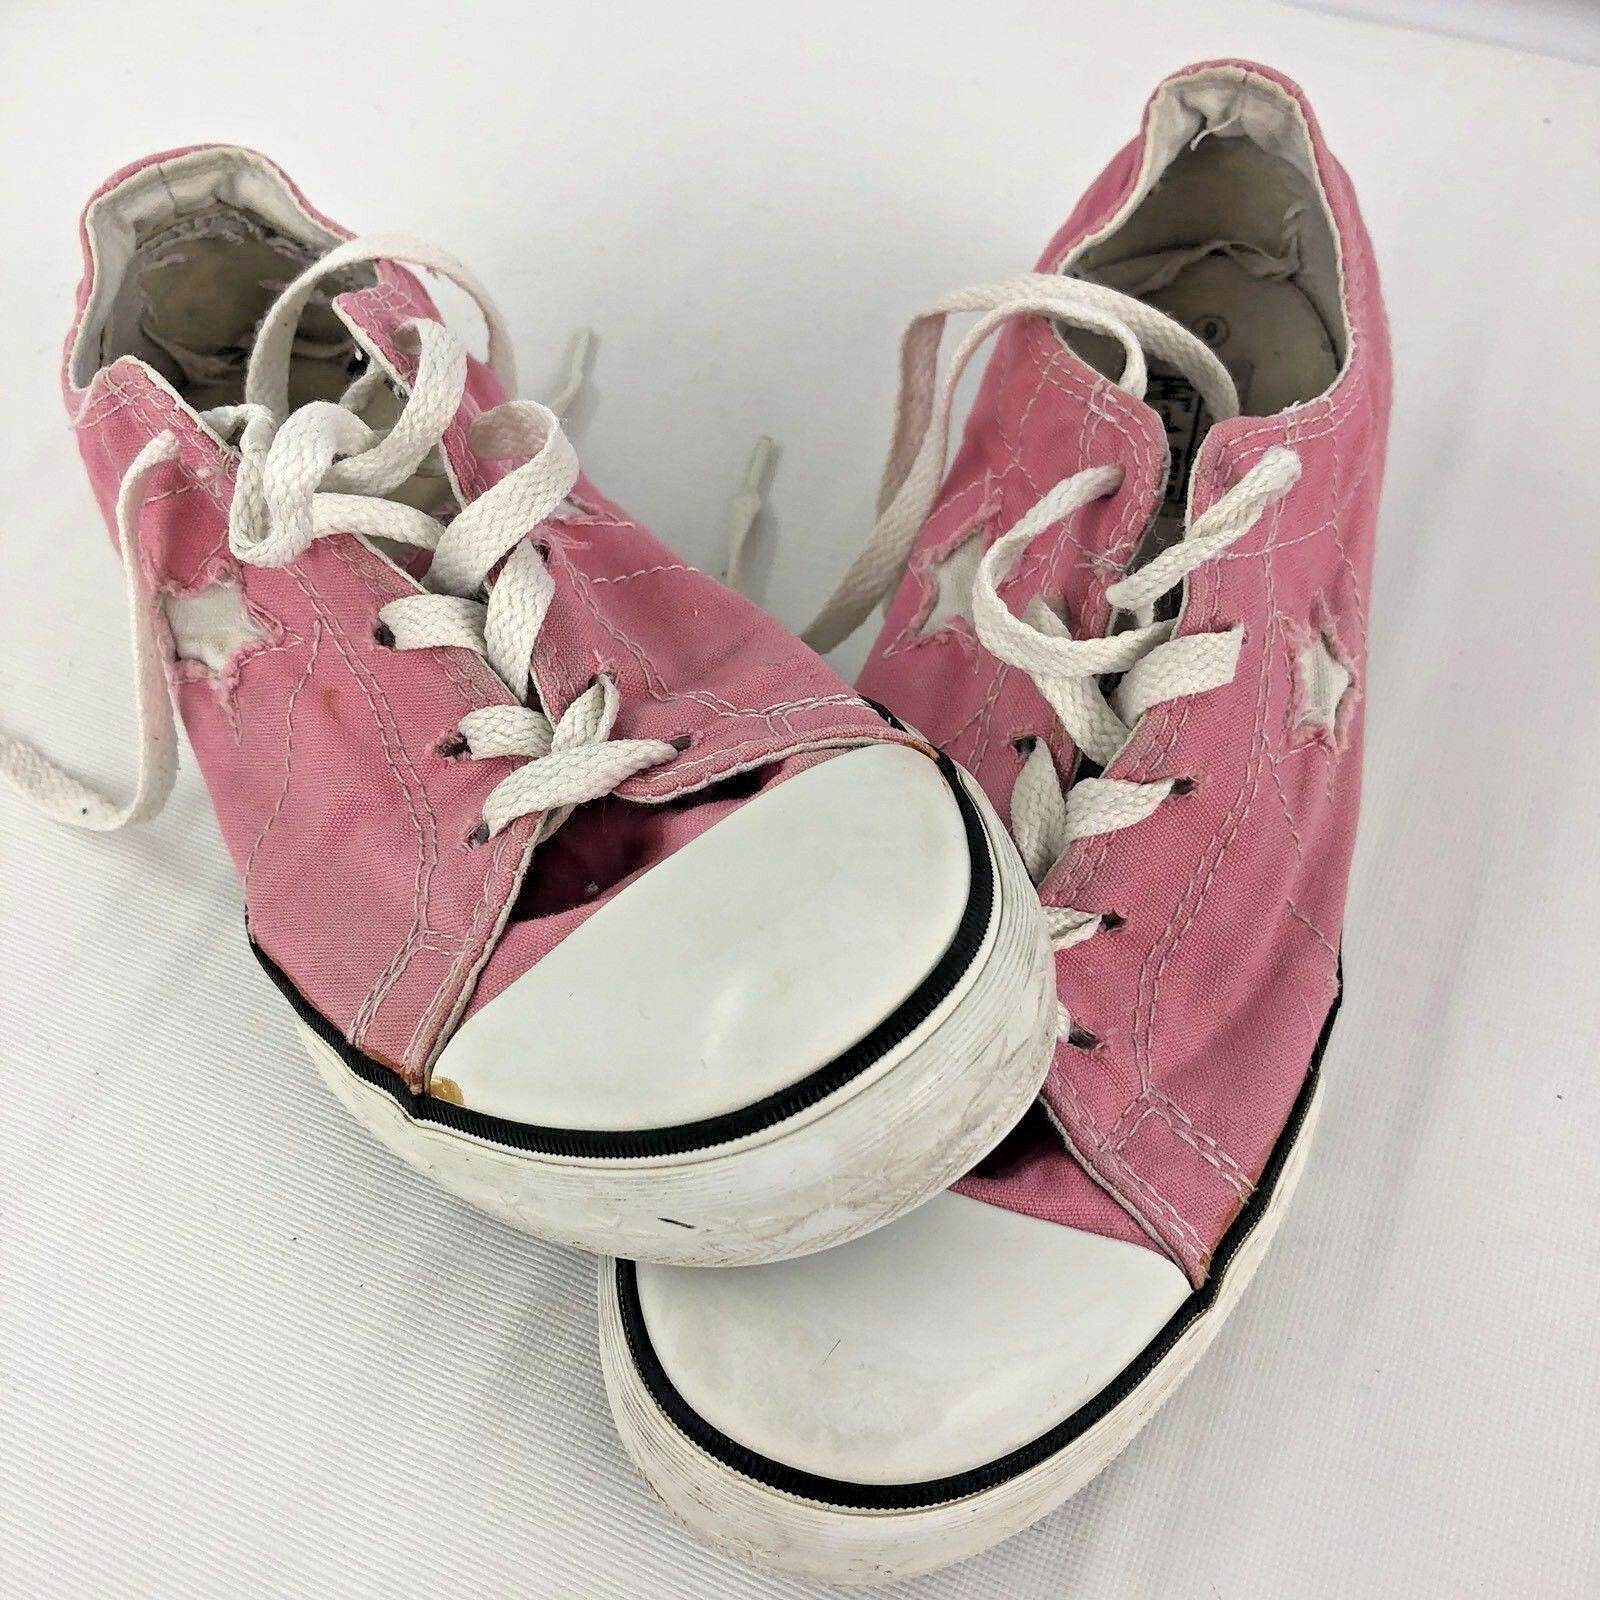 Pink Converse Woman 6 All Stars Low Top Hipster Shoes Canvas image 5